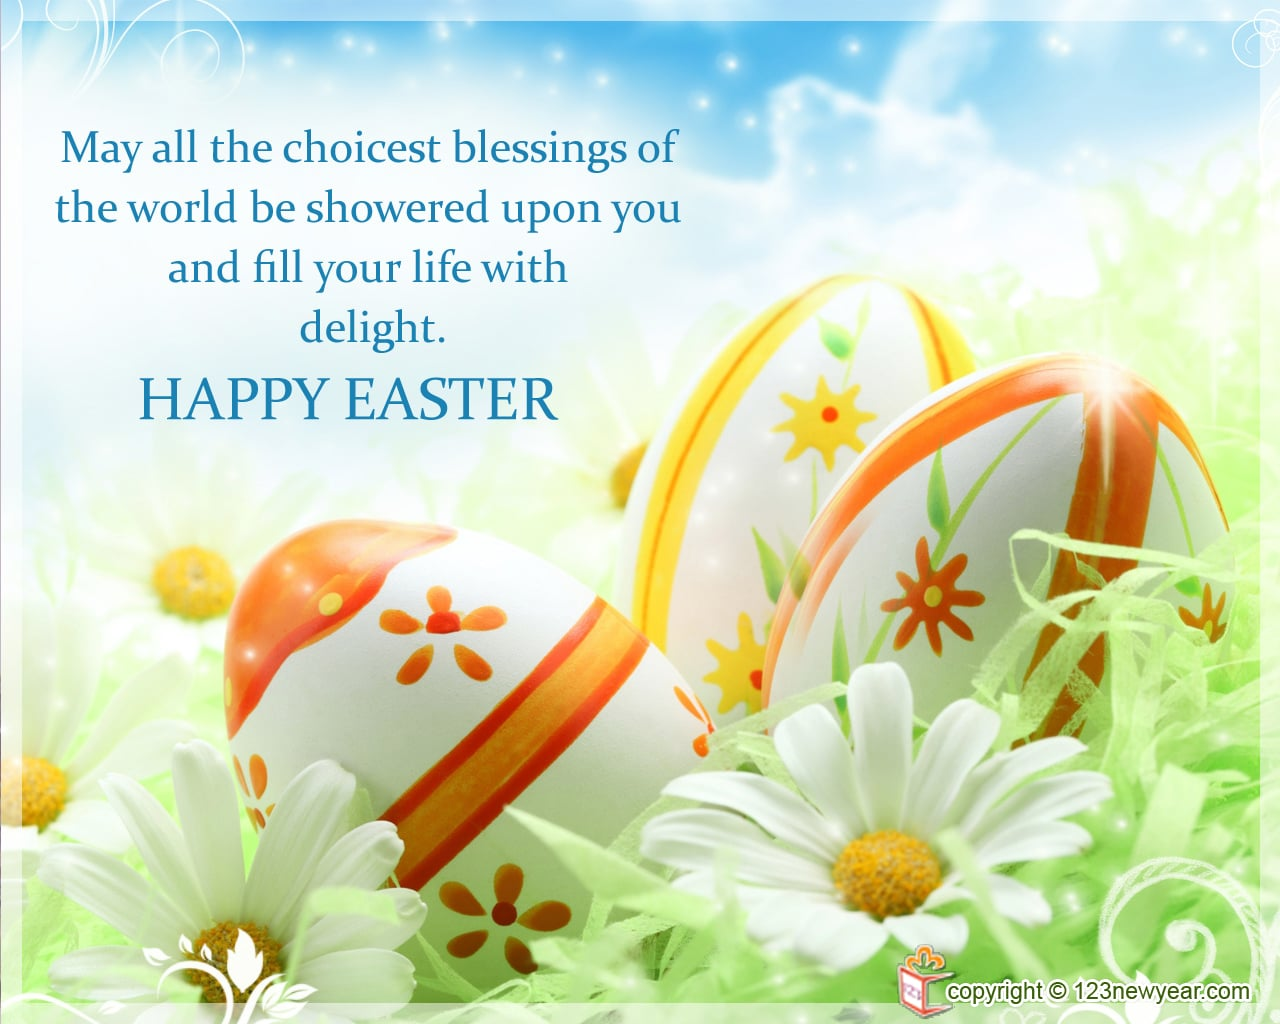 Happy Easter Day 2018 Messages Wishes Status Images 1280x1024